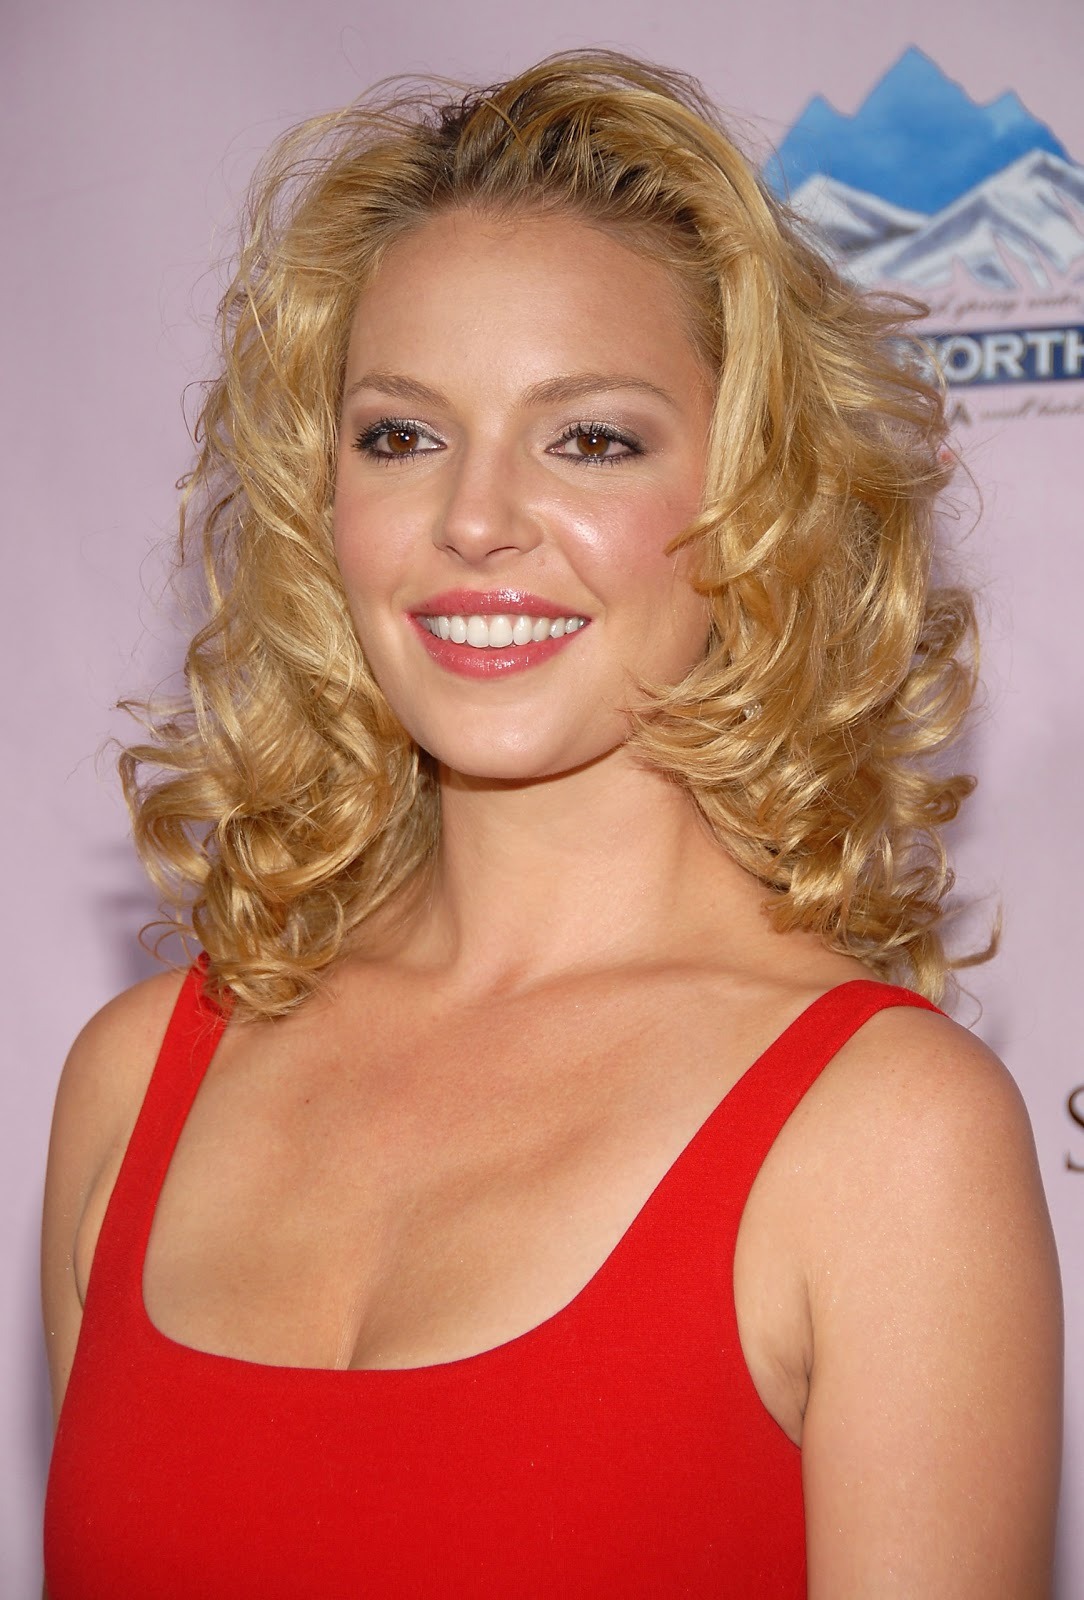 36D Breast Size Photos http://celebsbra.blogspot.com/2012/08/katherine-heigl-95e-36d.html